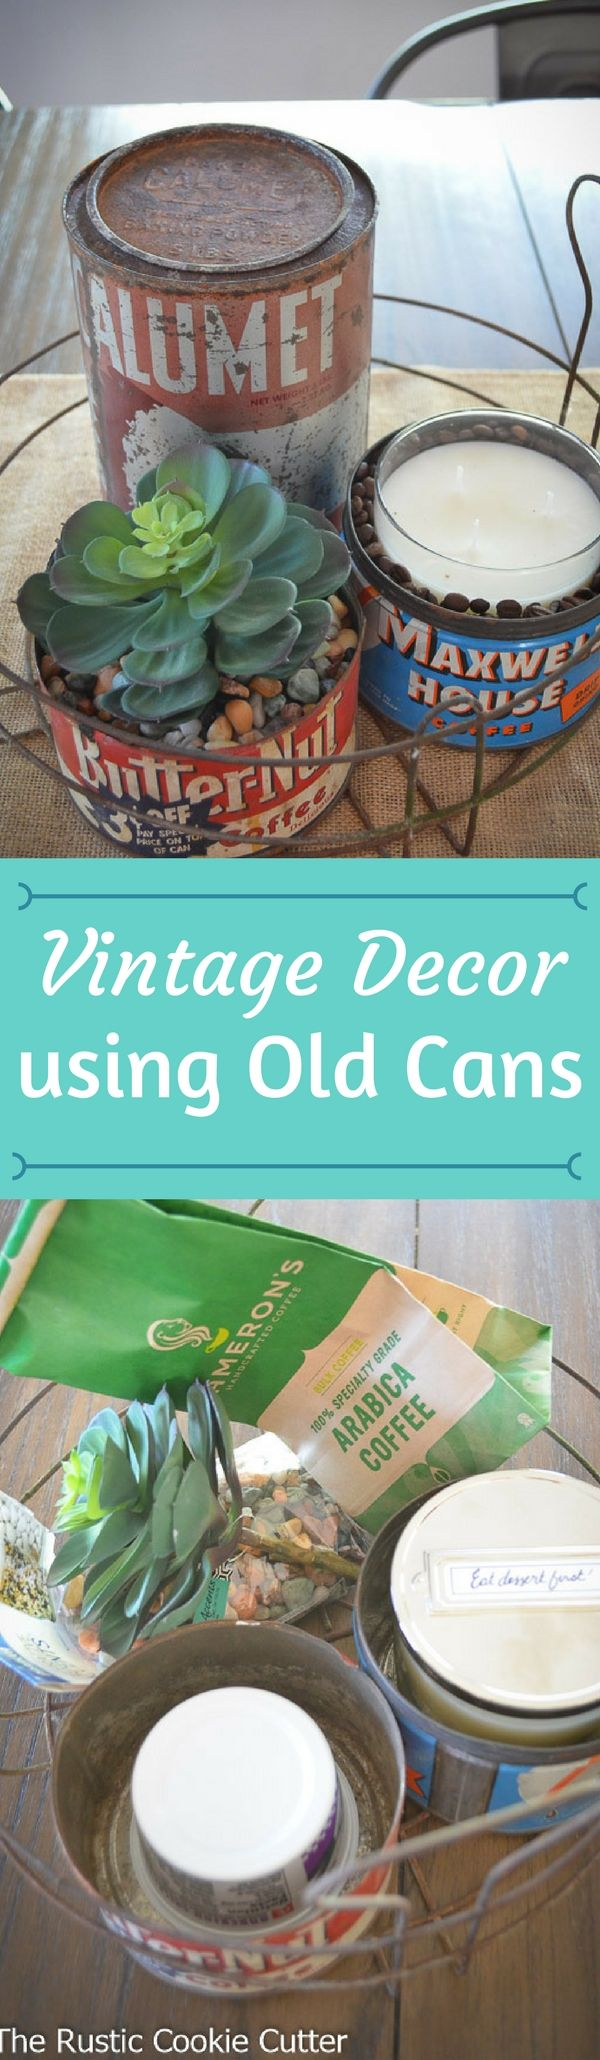 Cute vintage decor using old coffee cans, a rusty baking powder tin and a canning basket.  So cute!